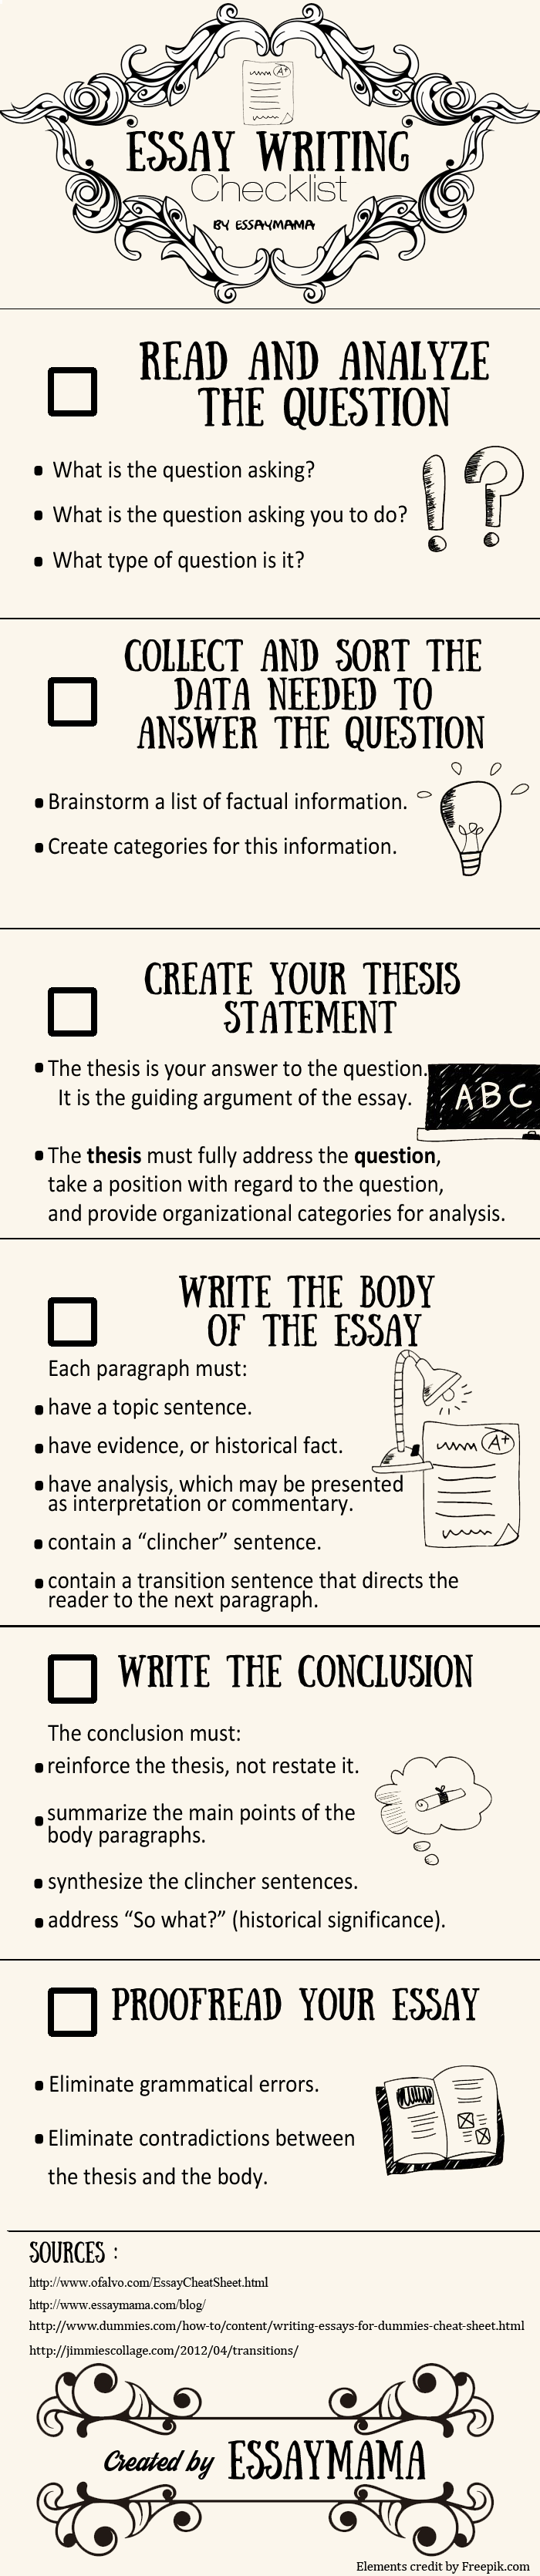 check your essay check if essay is plagiarized denver short term rental alliance check if essay is plagiarized